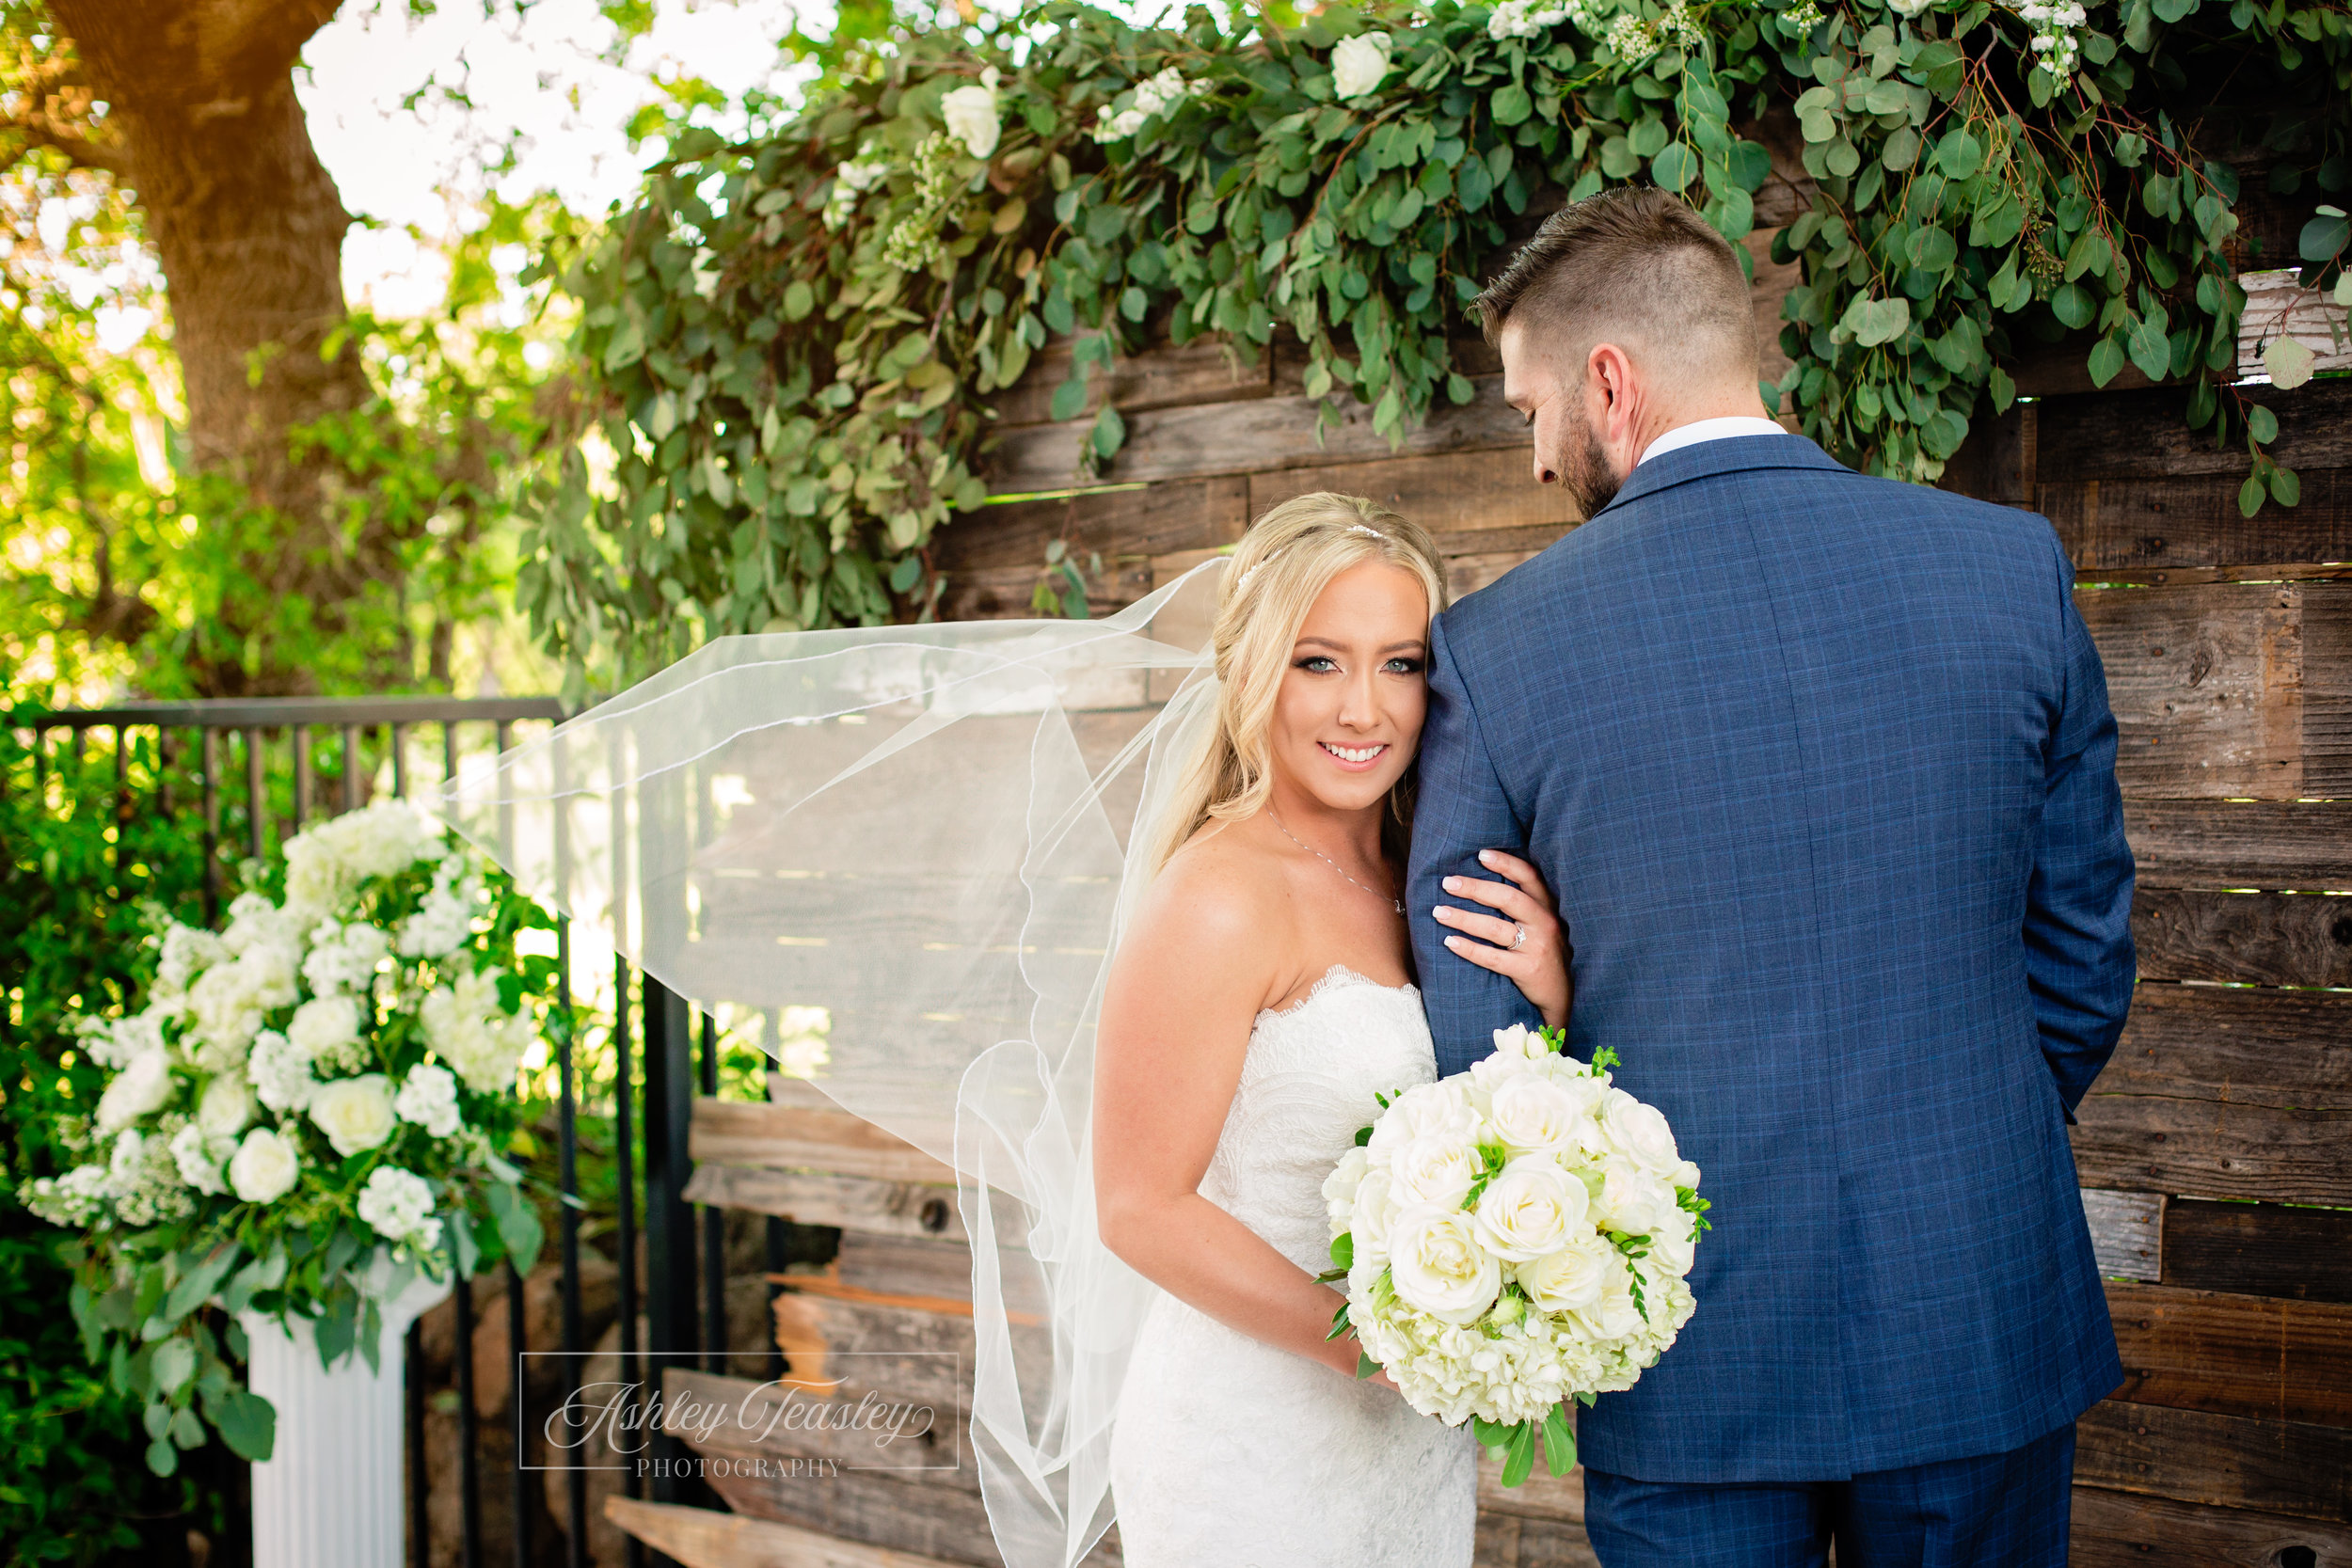 Karissa & Tyler - The Falls Event Center Elk Grove - Sacramento Wedding Photographer - Ashley Teasley Photography--2.jpg